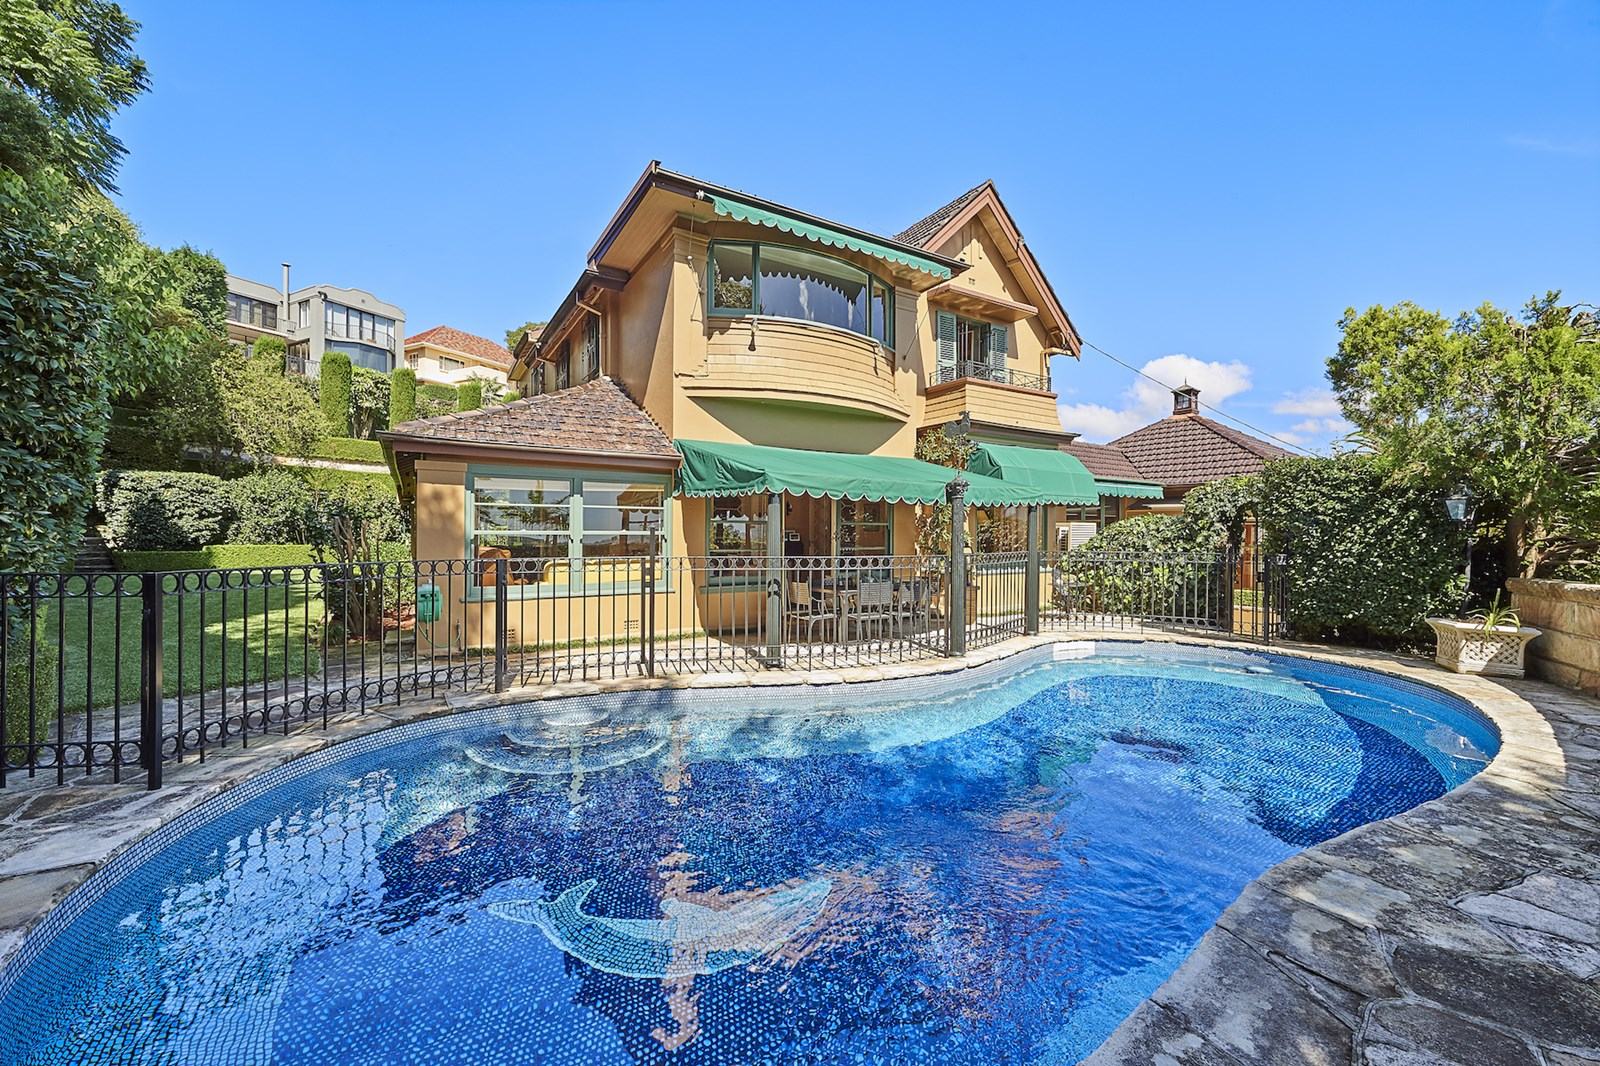 25 27 fairfax road bellevue hill nsw 2023 house for for Where is bellevue hill